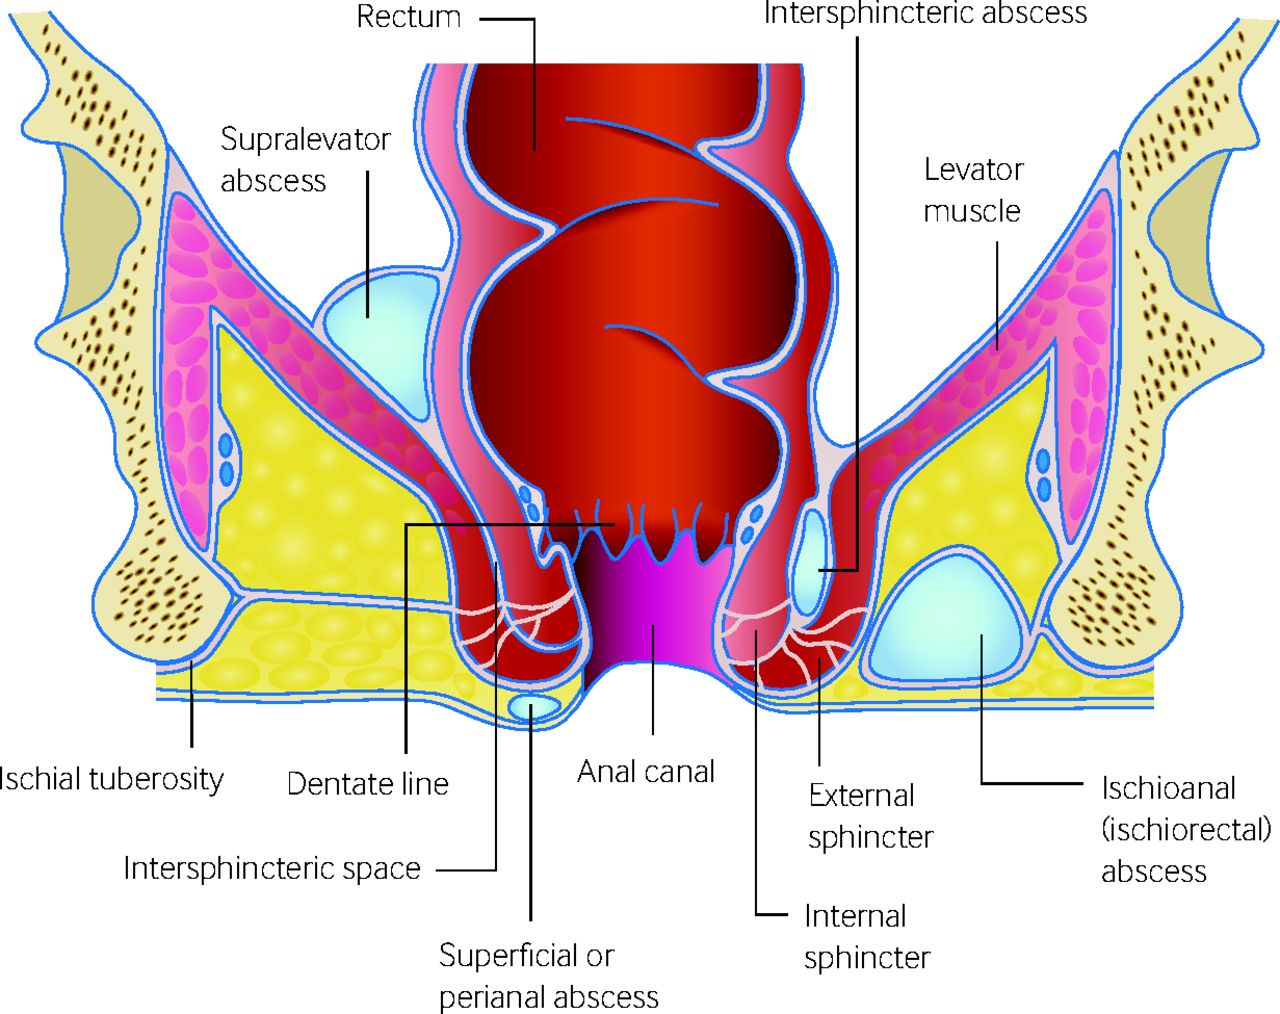 medium resolution of fig 1 possible sites of anorectal perianal abscesses